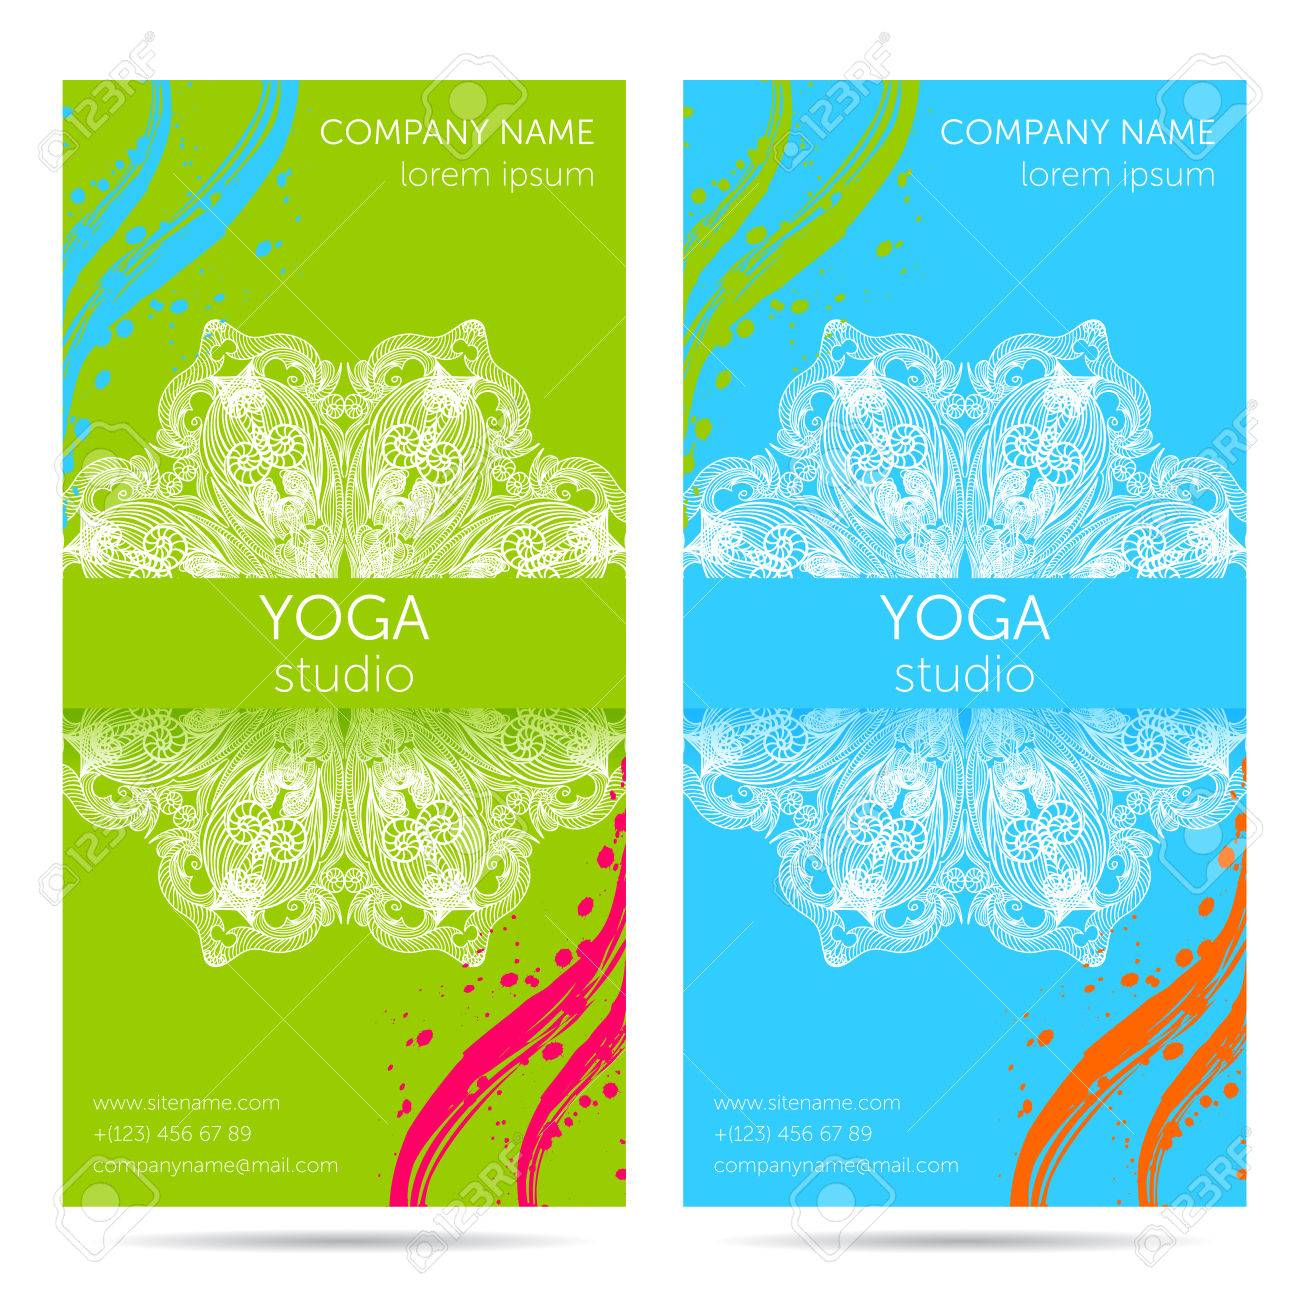 Design Template For Yoga Studio With Mandala Ornament Background Royalty Free Cliparts Vectors And Stock Illustration Image 56891382